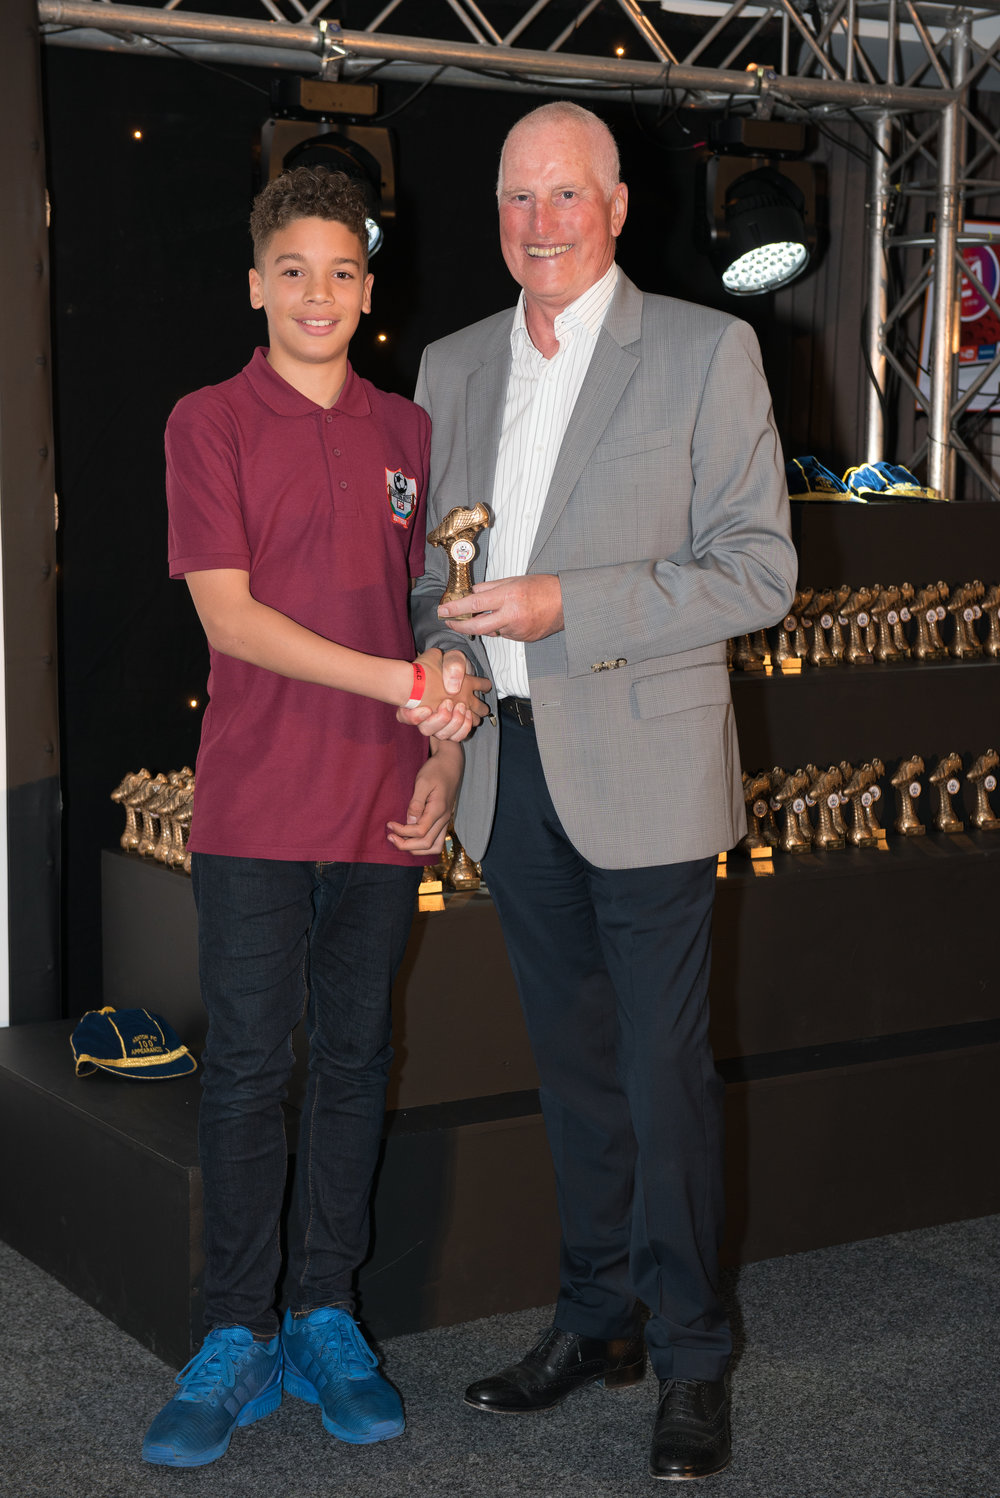 Ashton FC Awards 2017 - Photos are online hereSupporting this very busy event for the 5th year. 350 young footballers, ranging from 5 to 16 years old.Our team is able to provide 6x9 instant on site printing and downloadable digital versions.